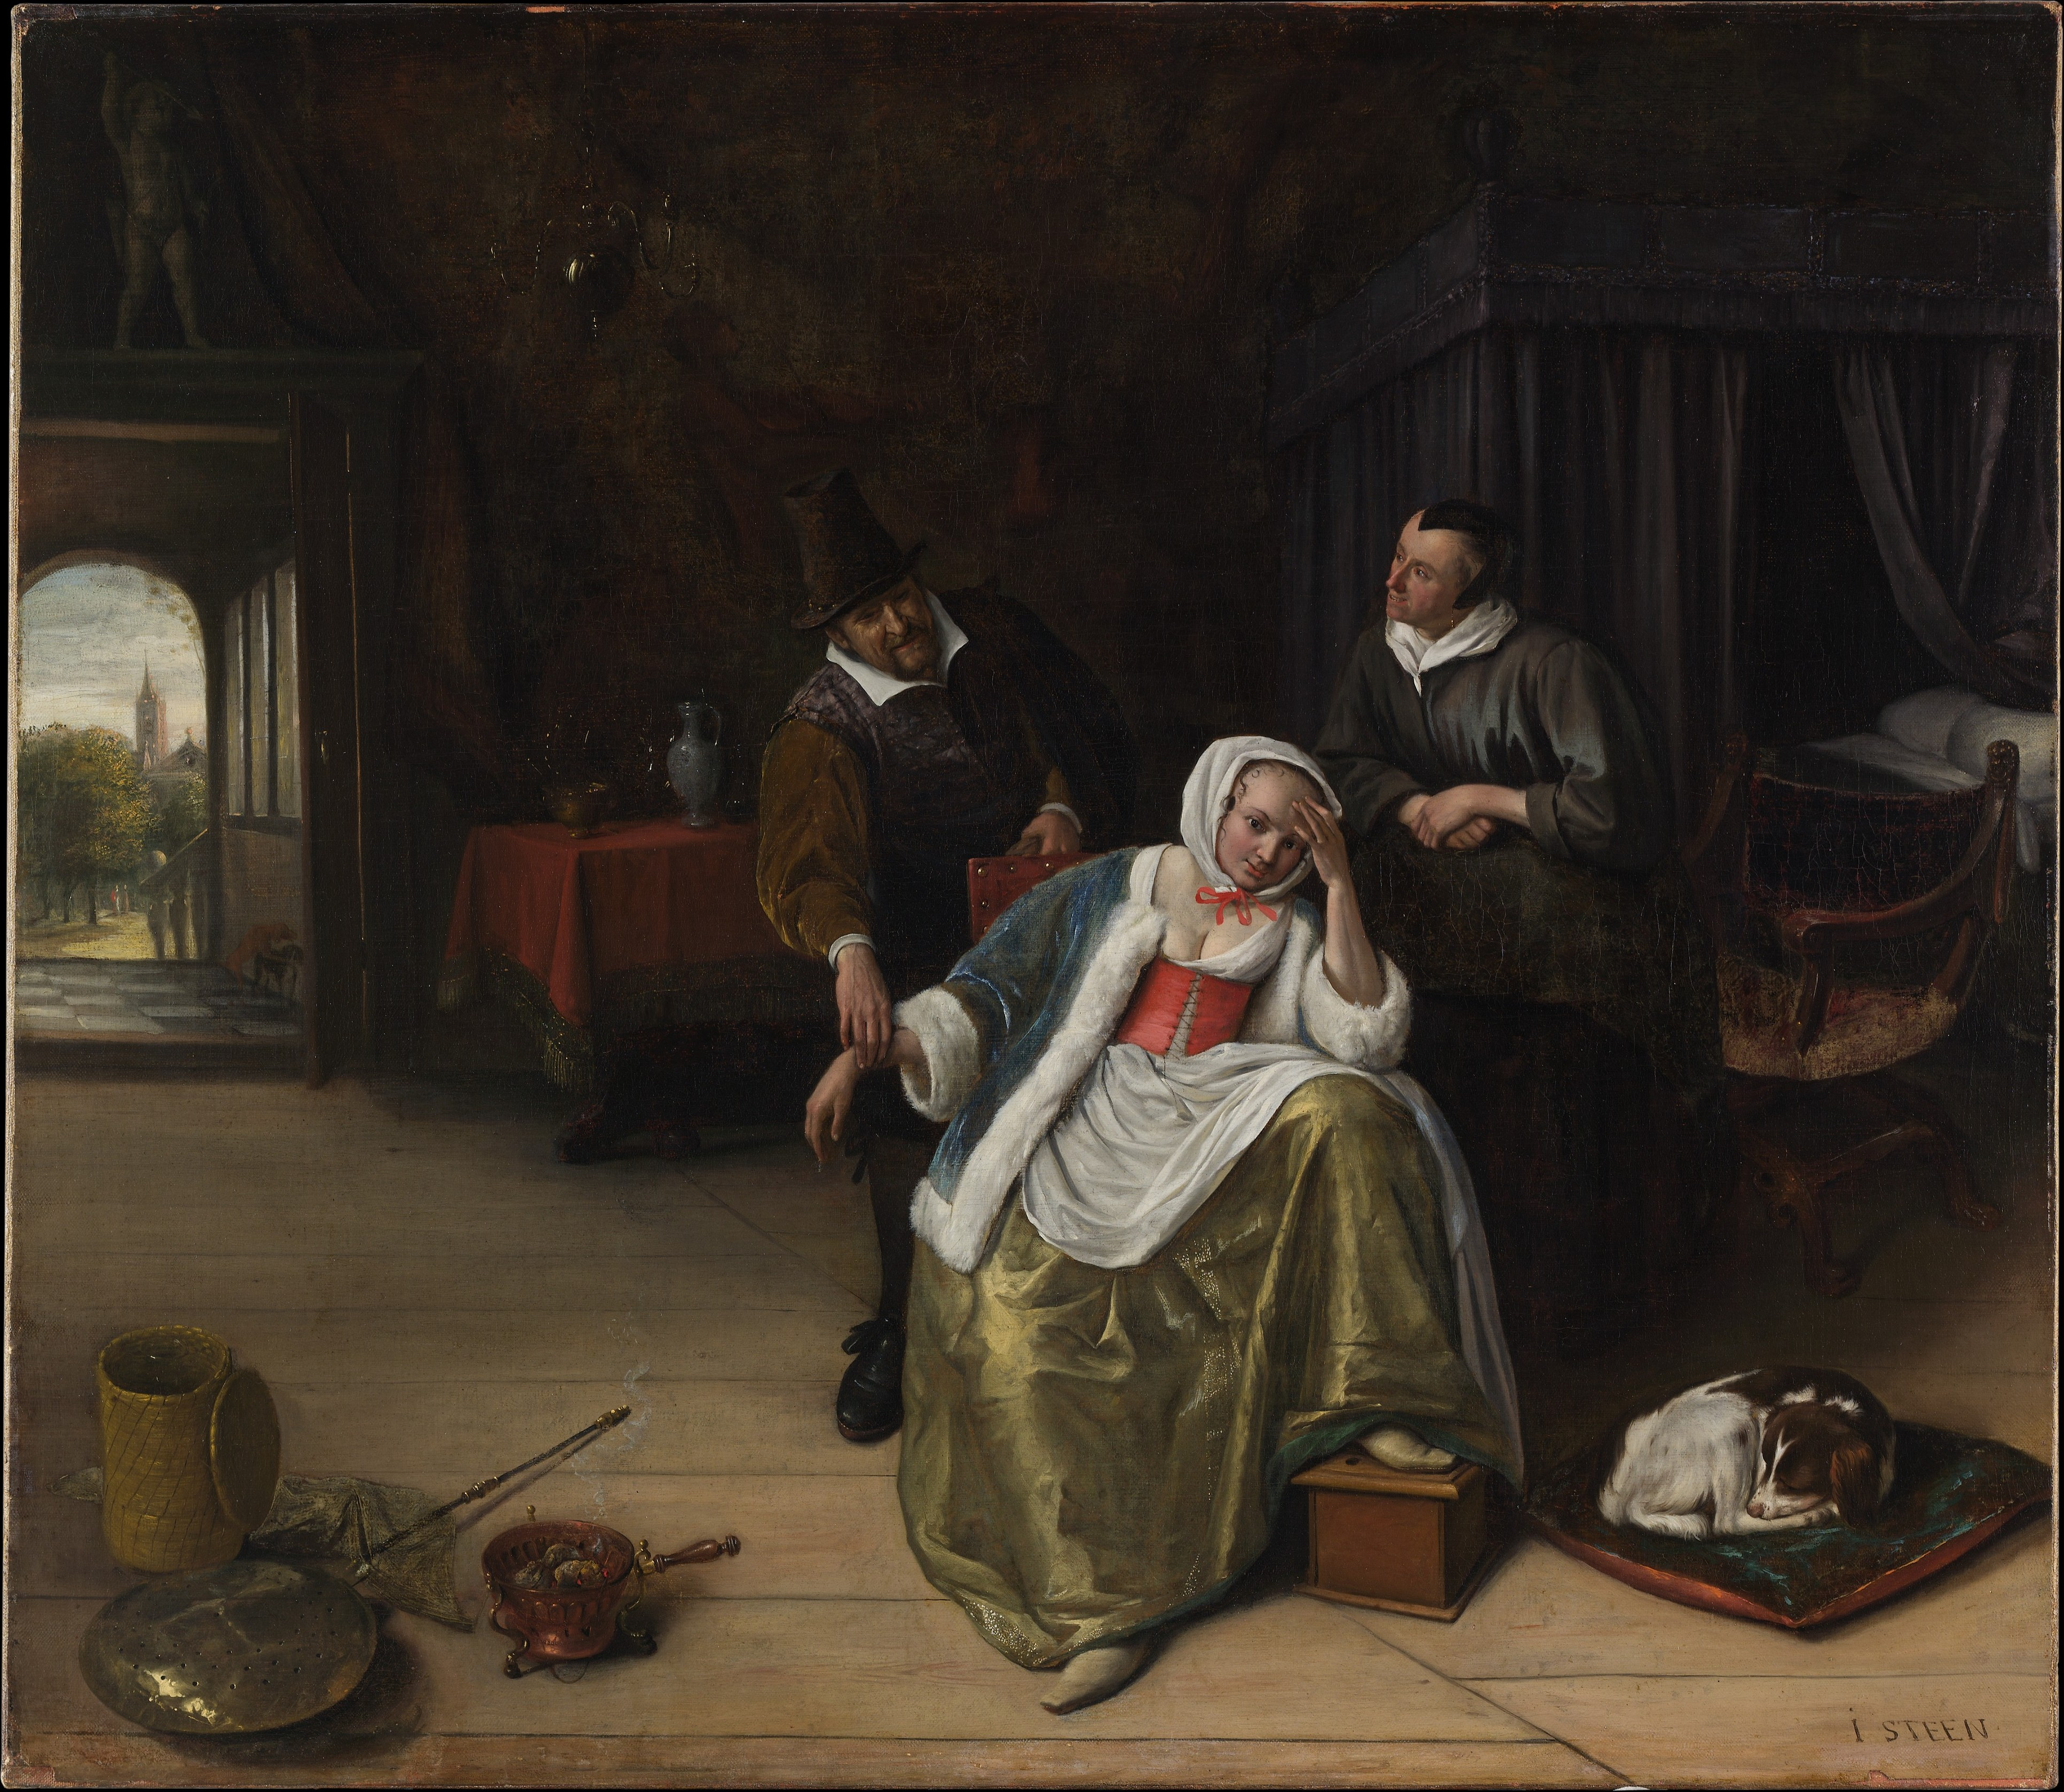 The Love Sick Maiden 1660 by Jan Steen